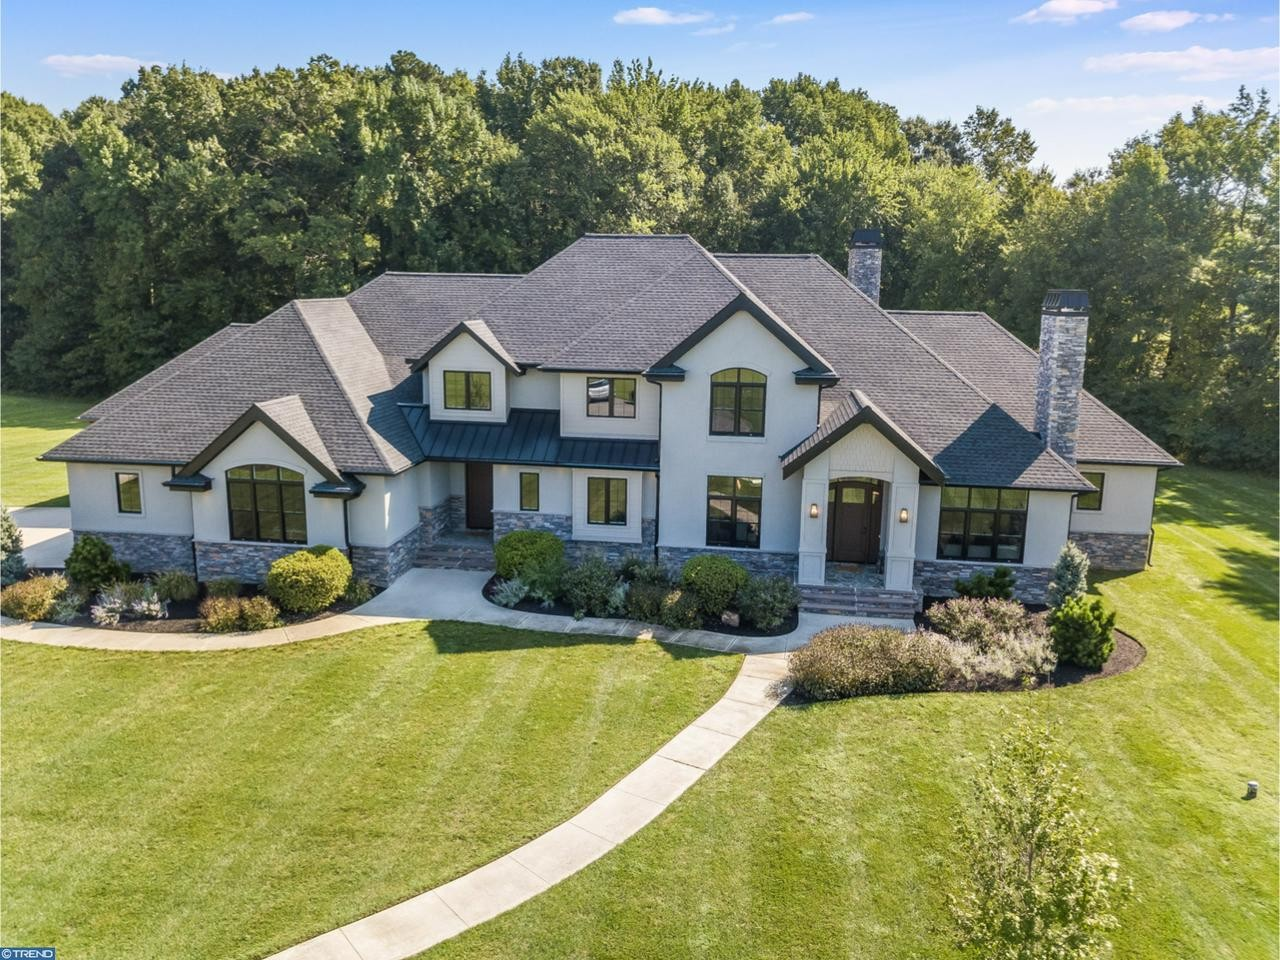 Beach Houses For Sale In Delaware